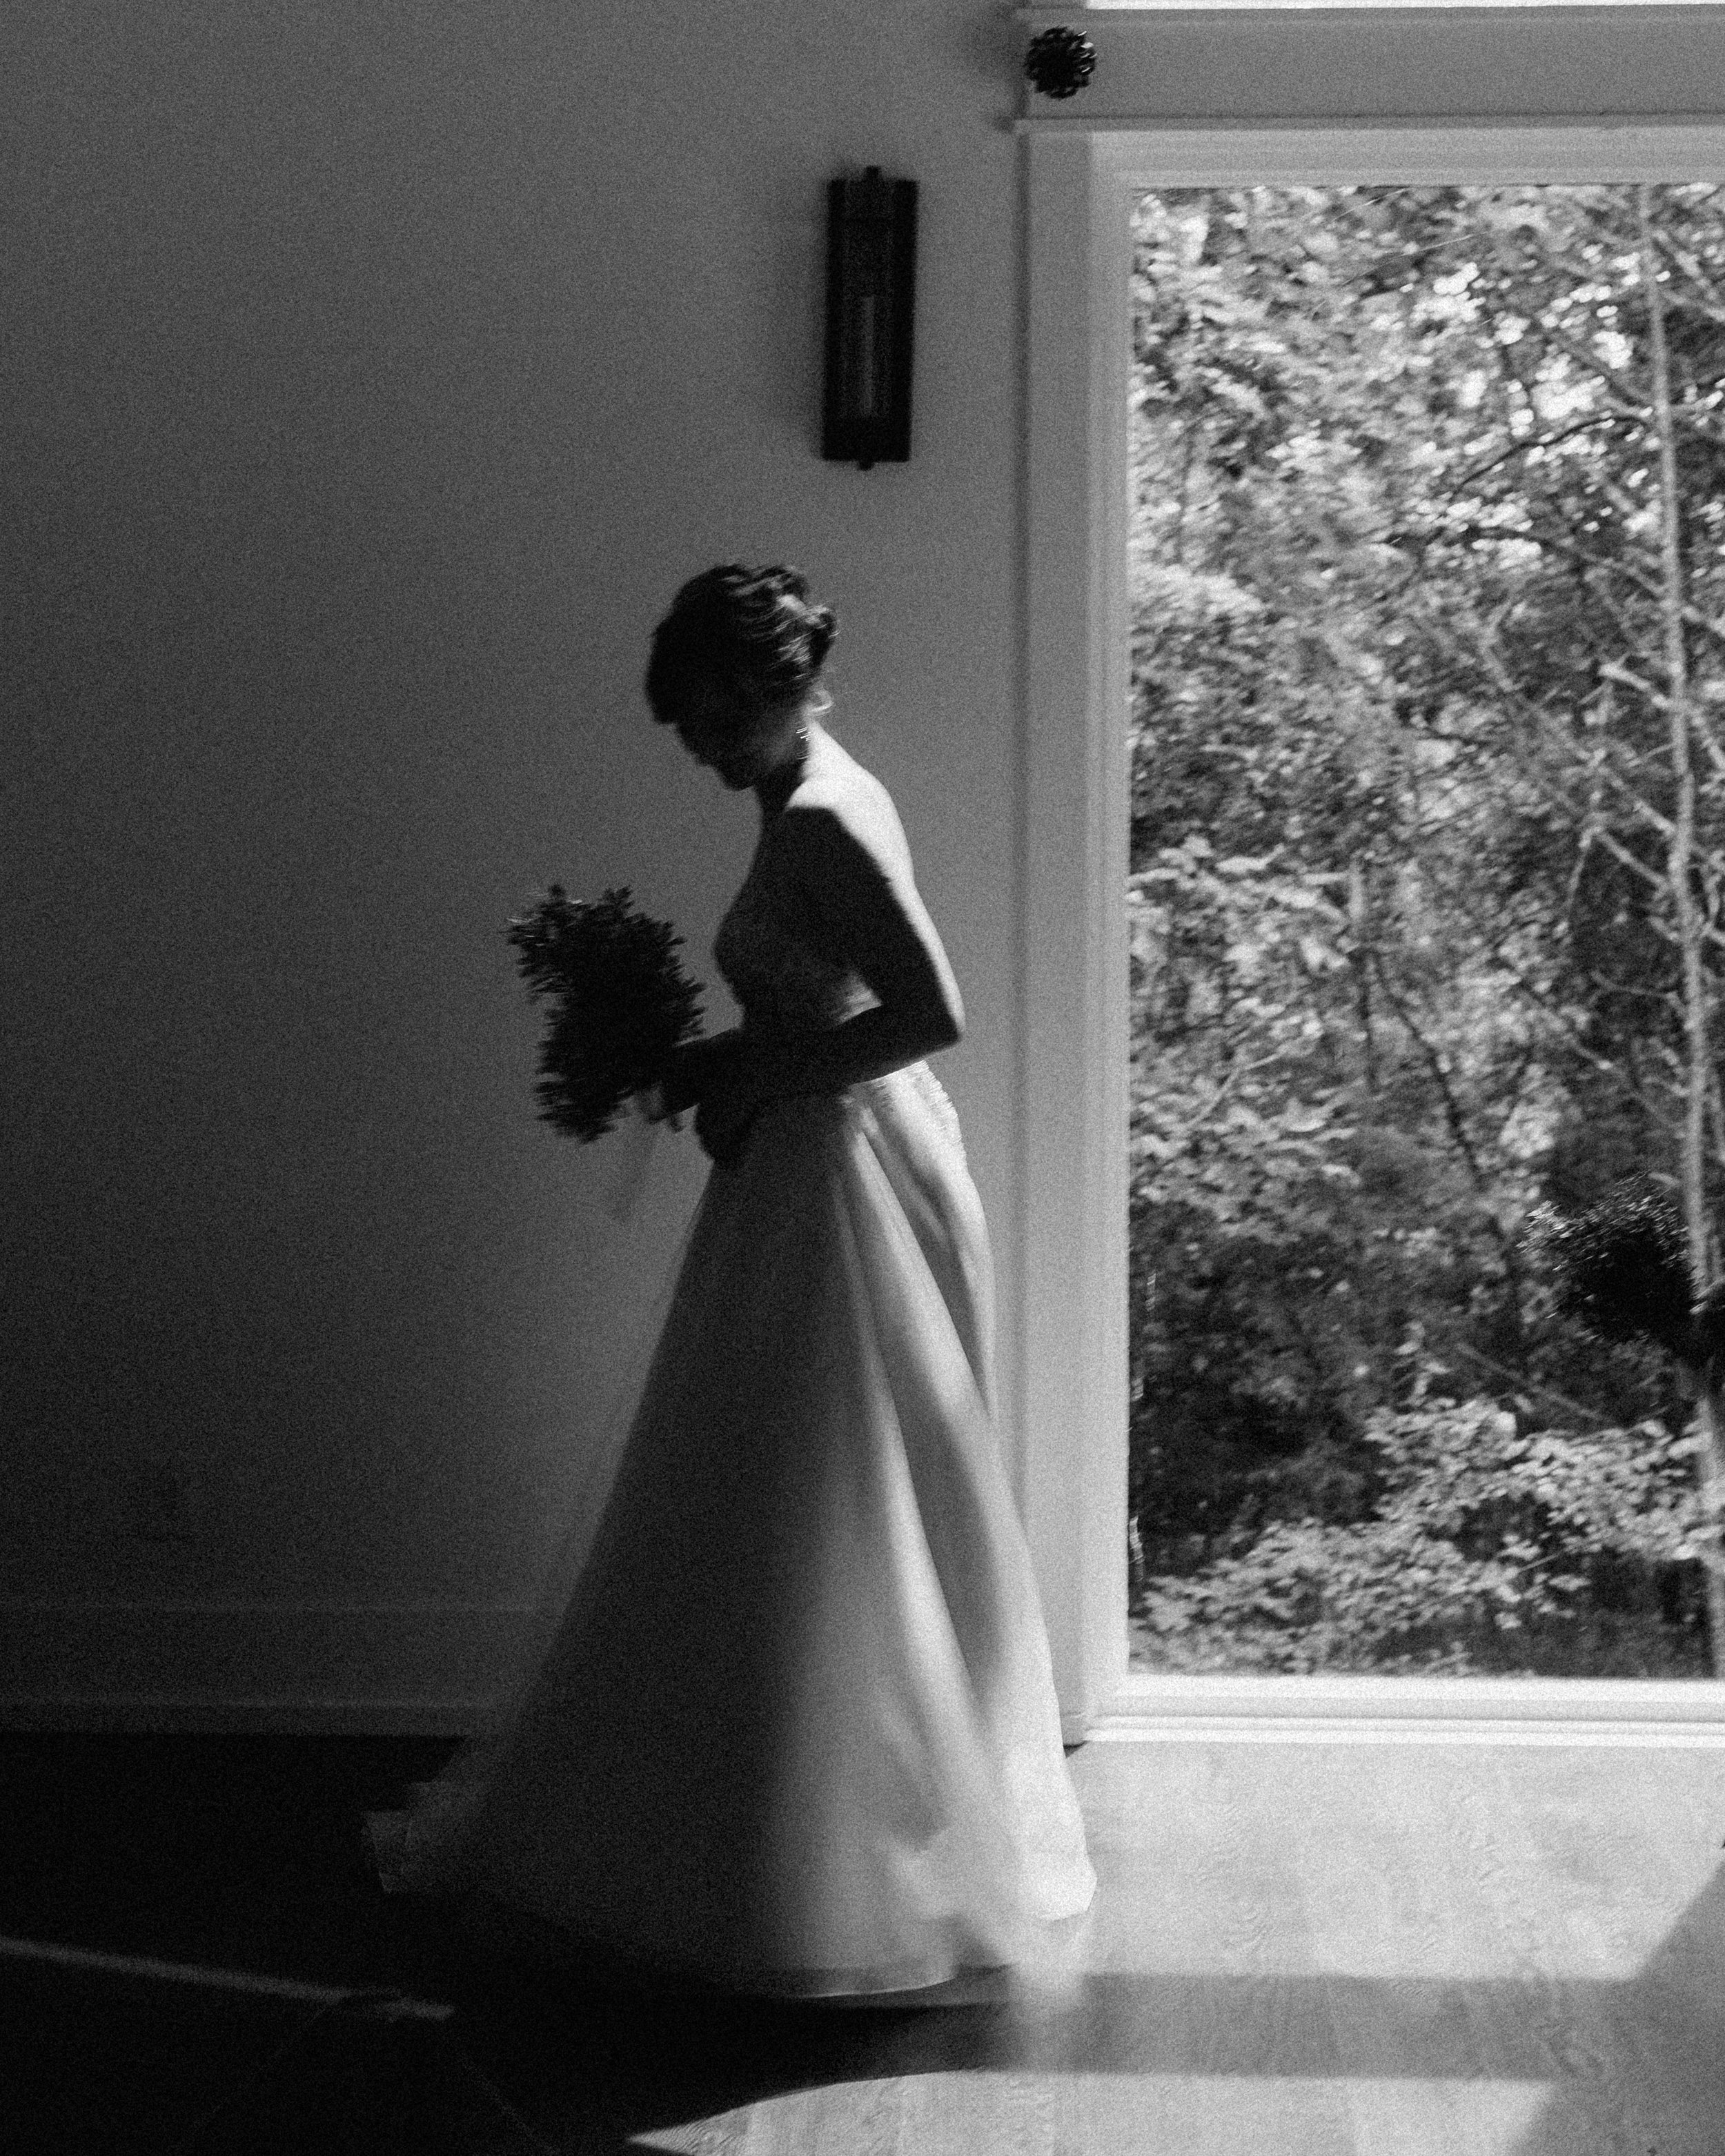 dahlonega_juliette_chapel_photojournalism_atlanta_wedding_photographers_1570.jpg